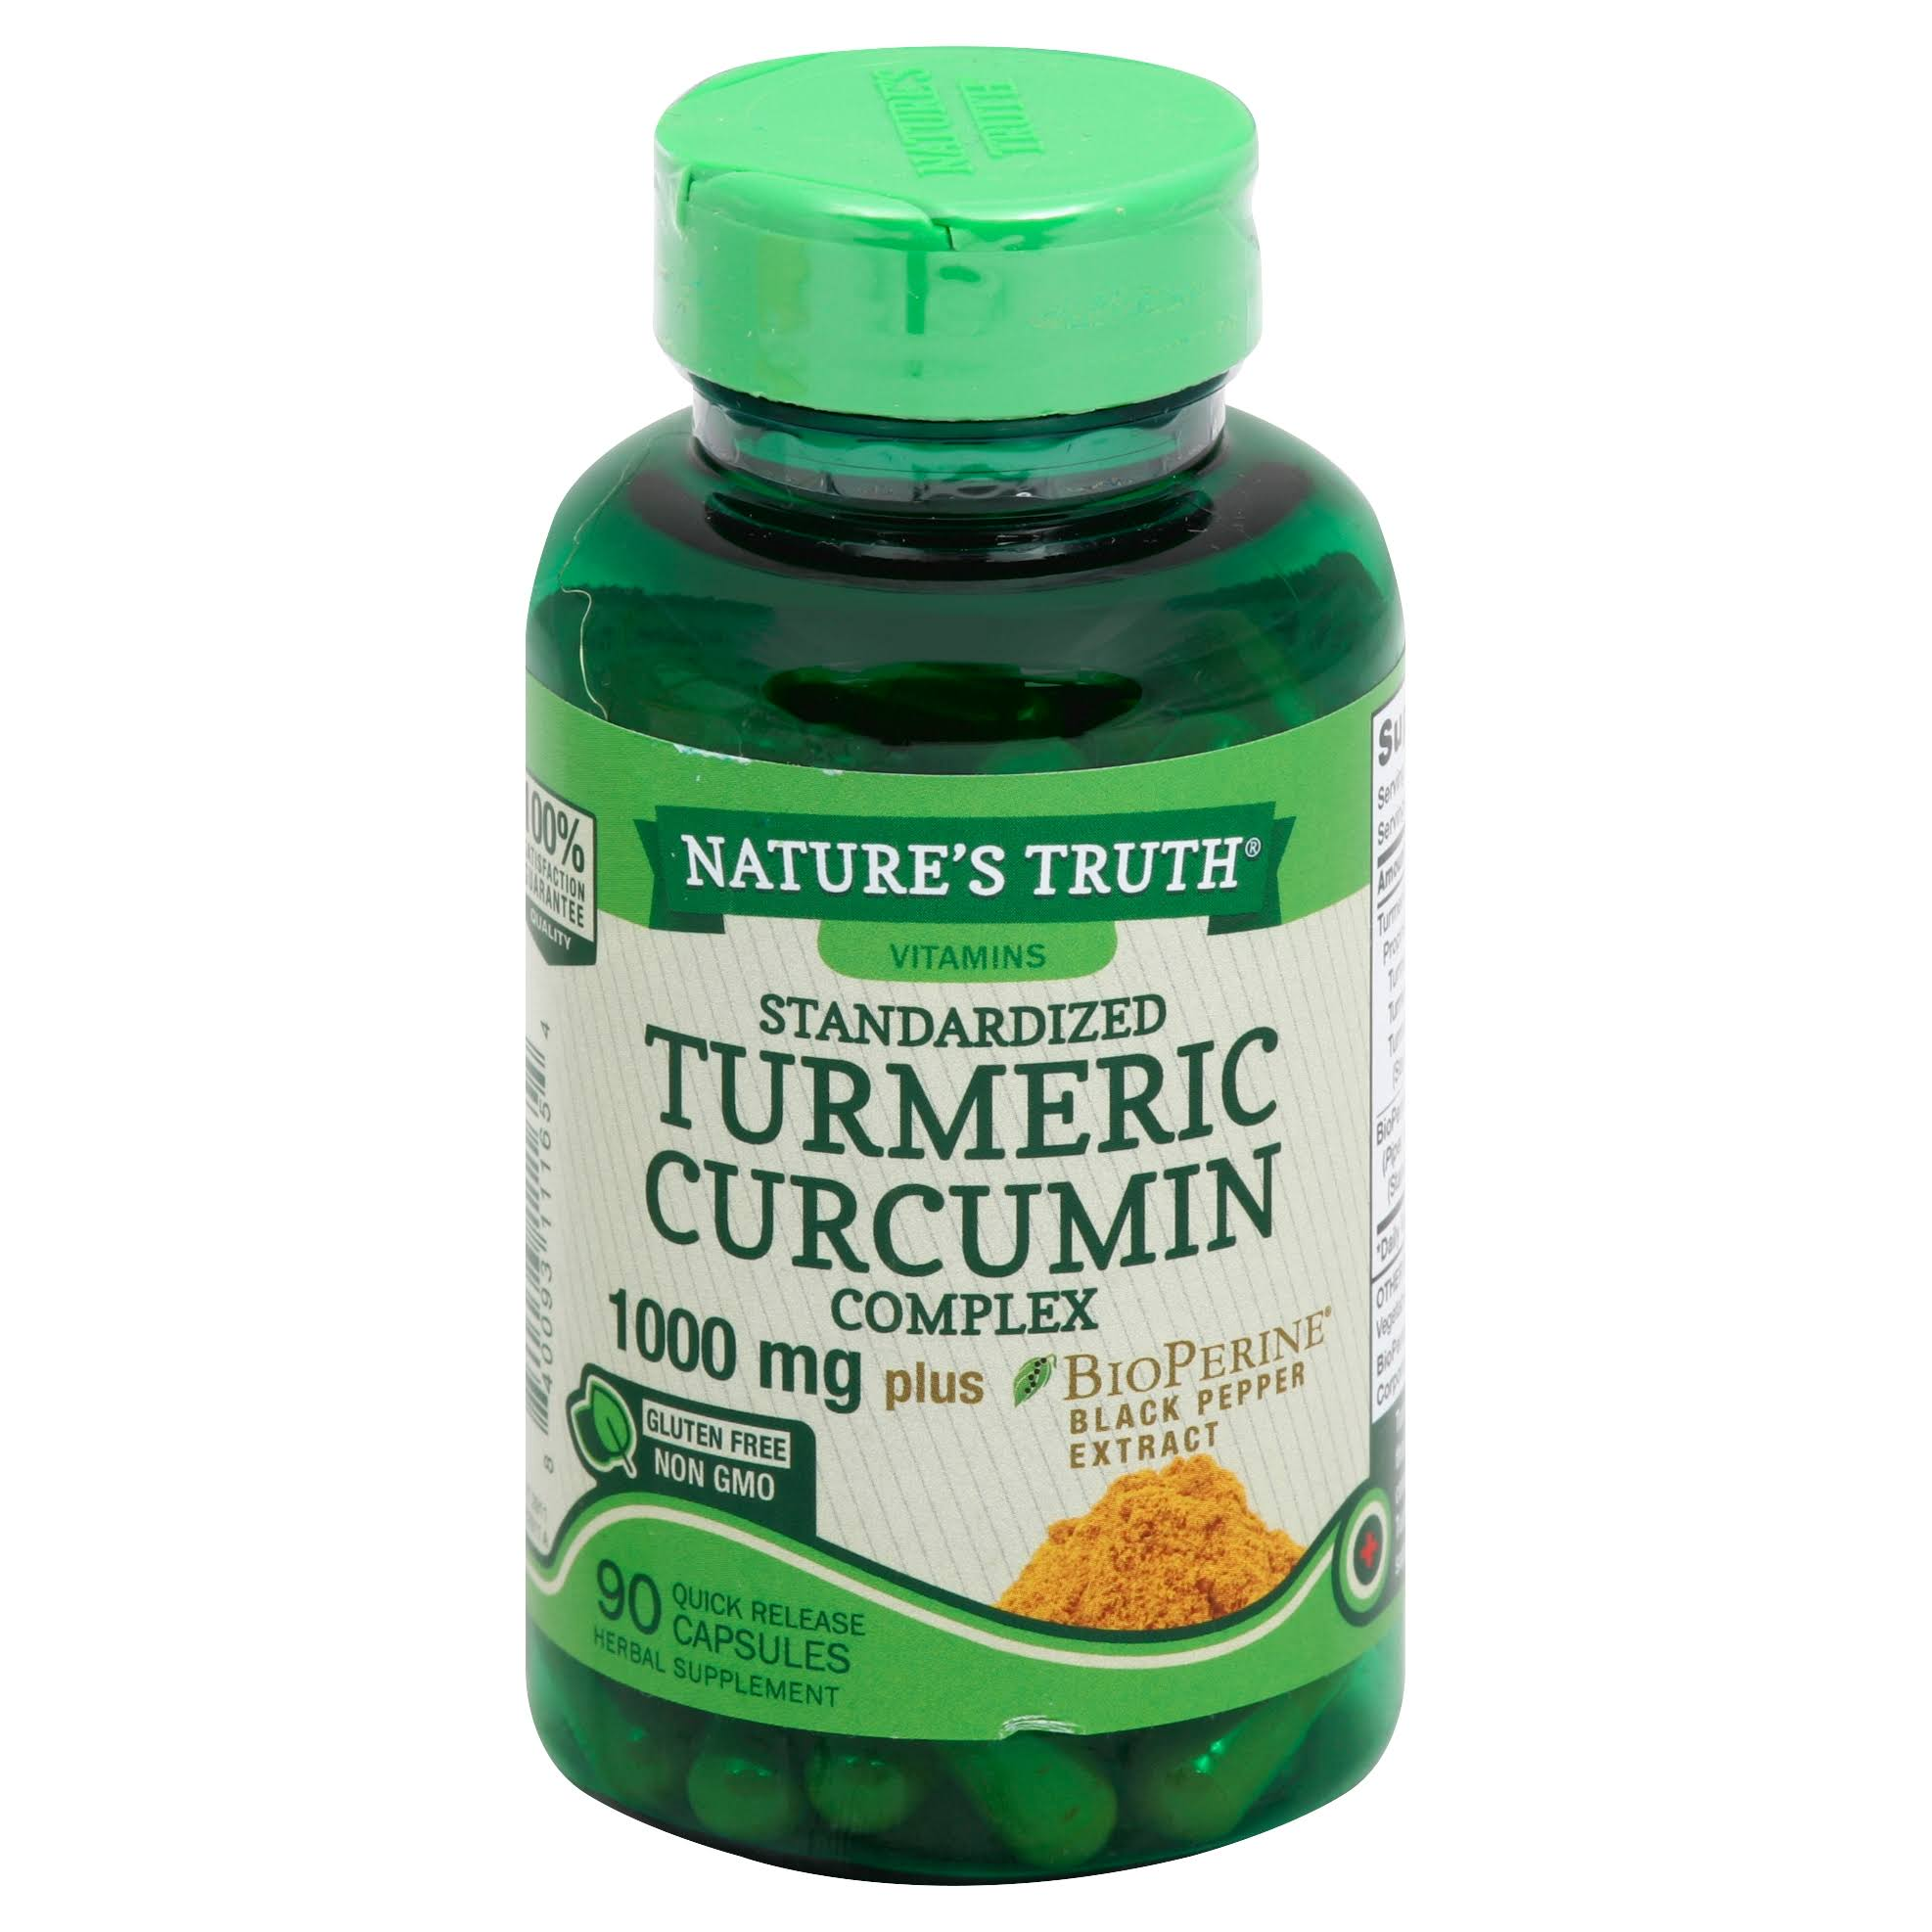 Nature's Truth Standardized Turmeric Curcumin Complex - 2000 mg, 90 Caps